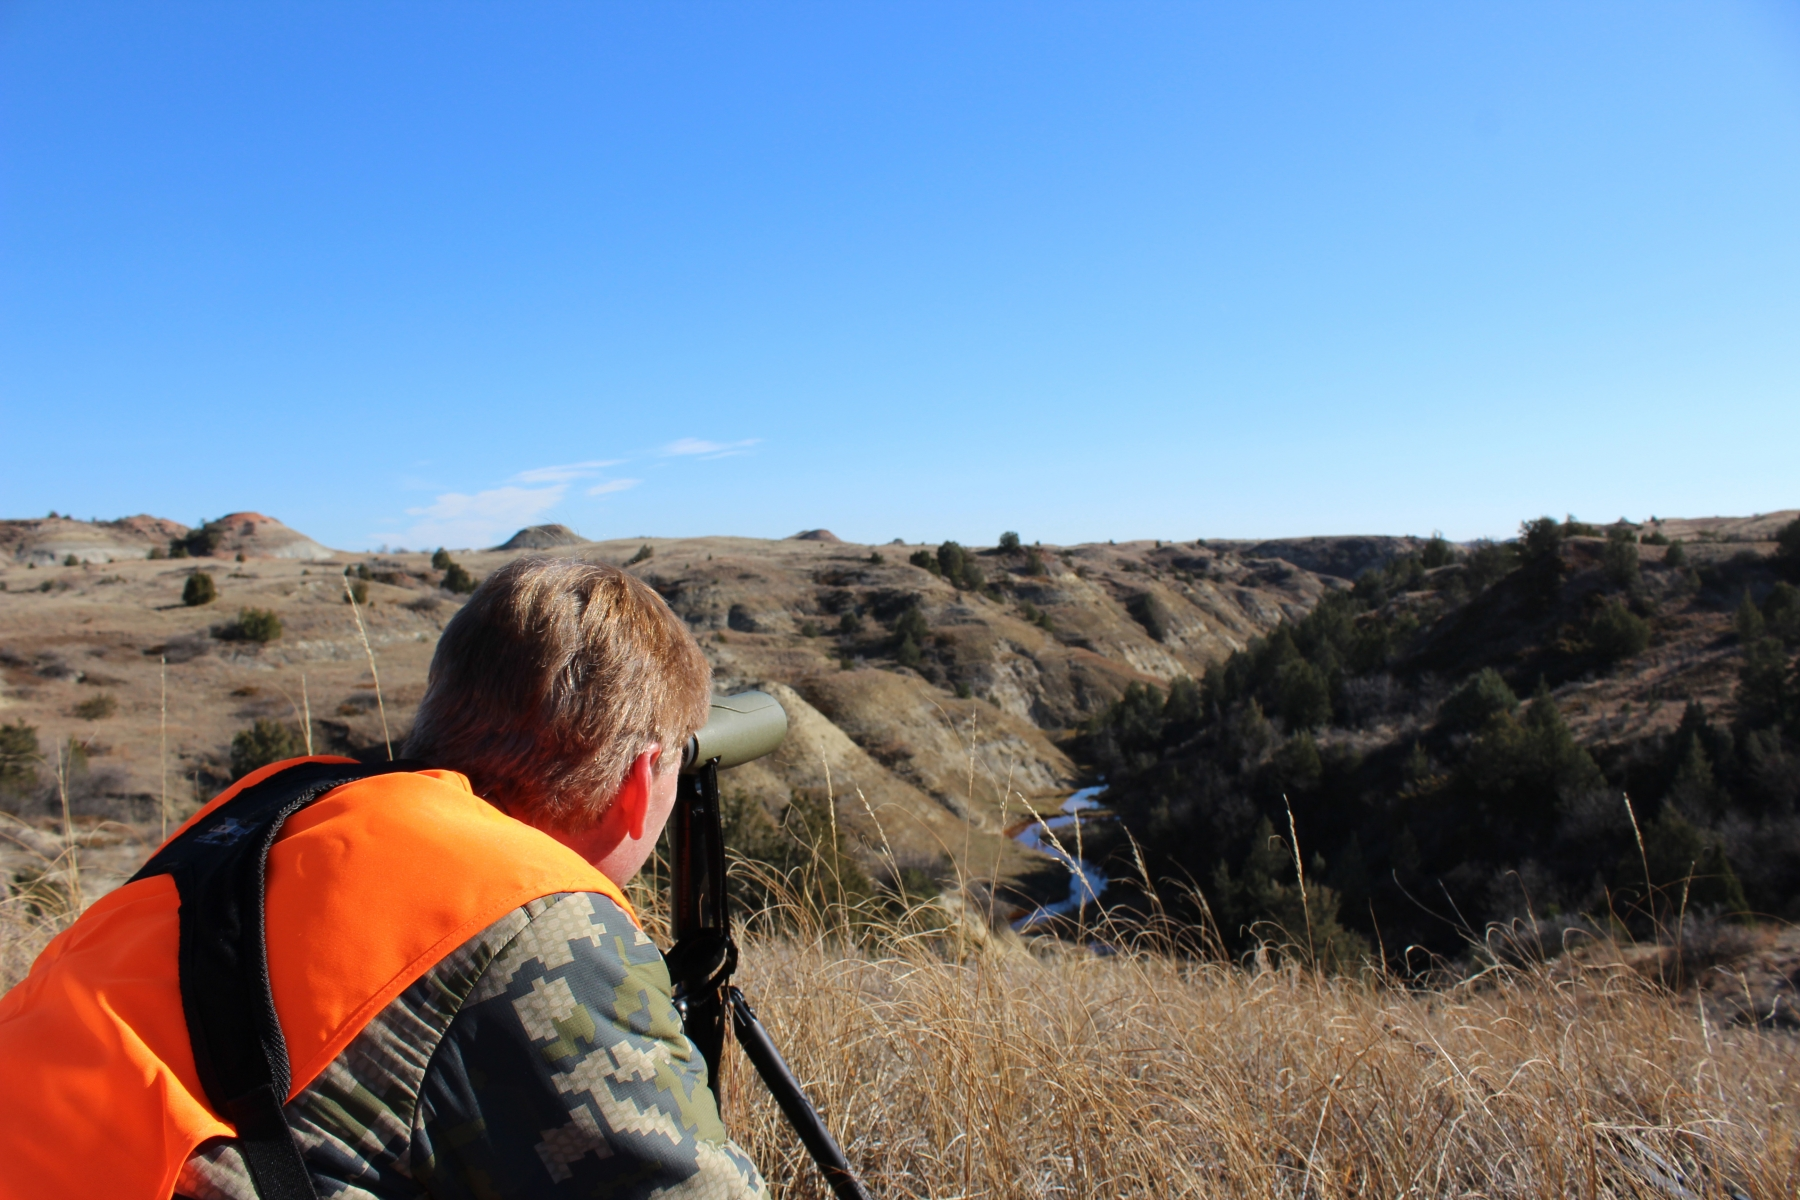 Glassing for Mule Deer on the Prairie